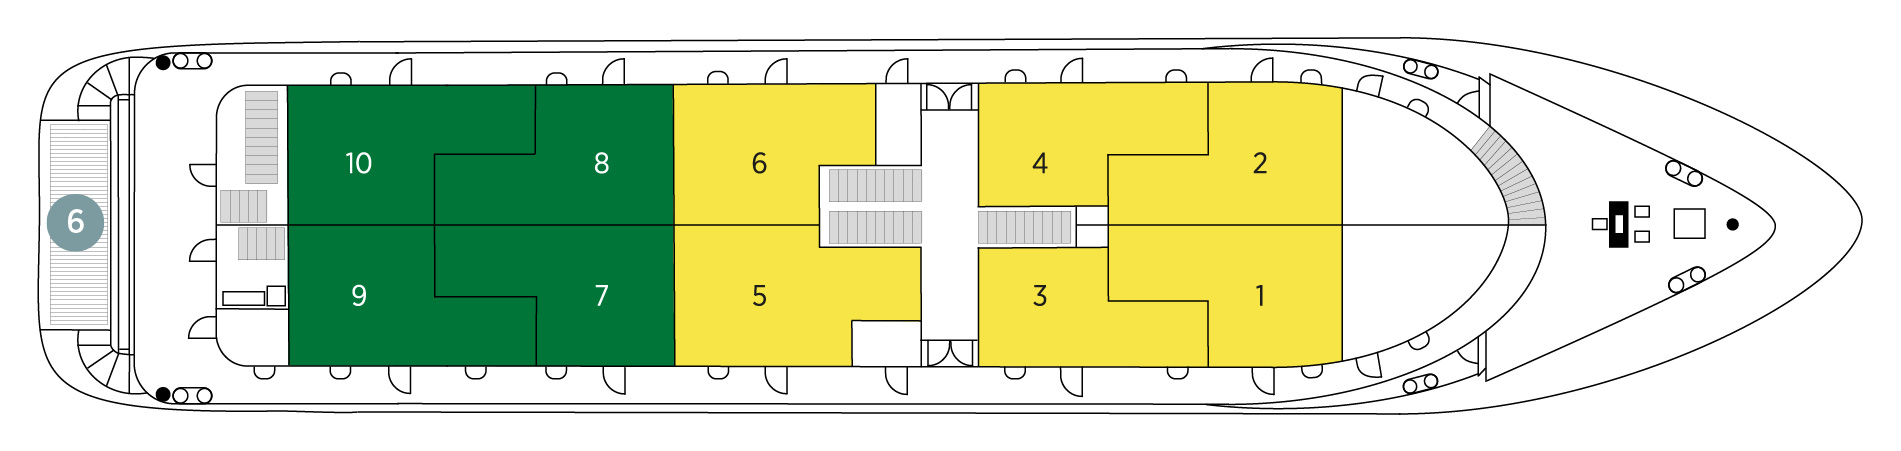 Adriatic Pearl Middle Deck plan